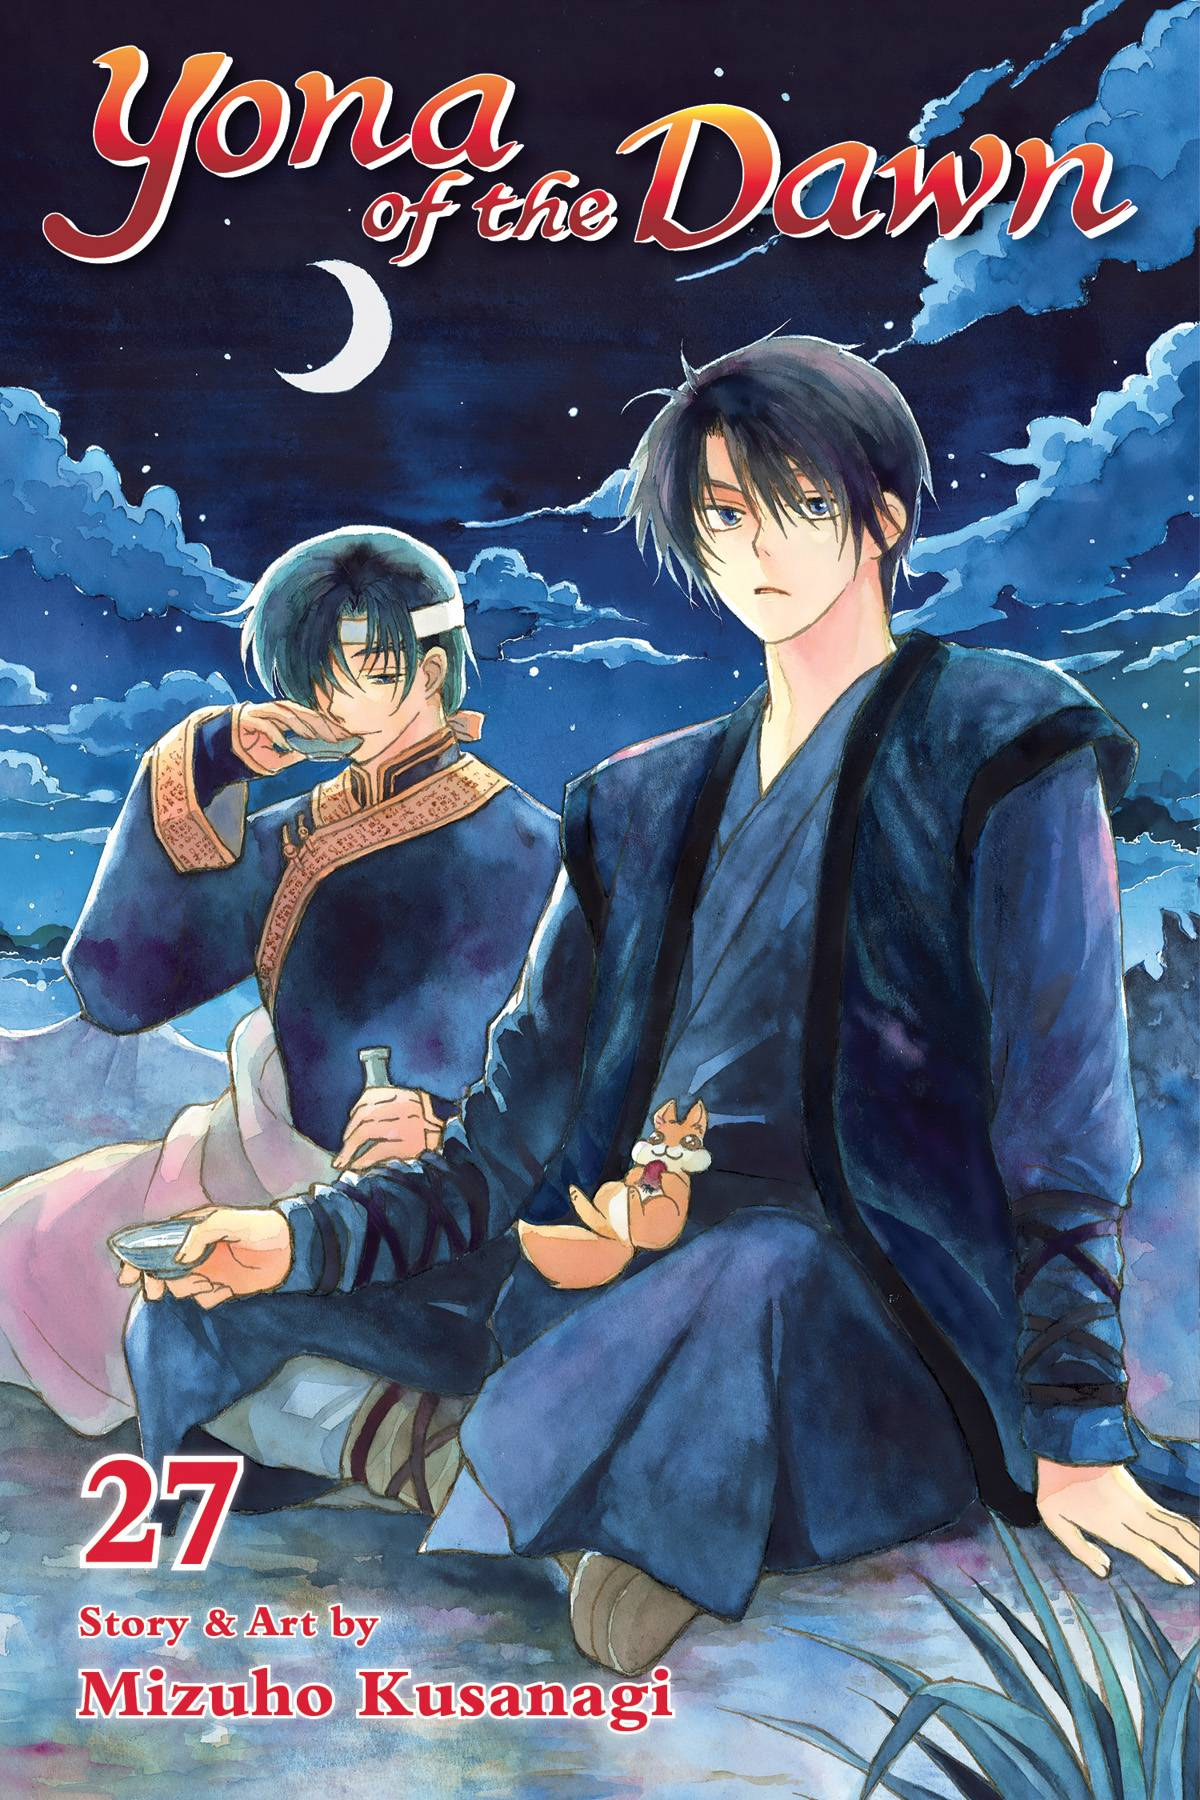 YONA OF THE DAWN GN 27